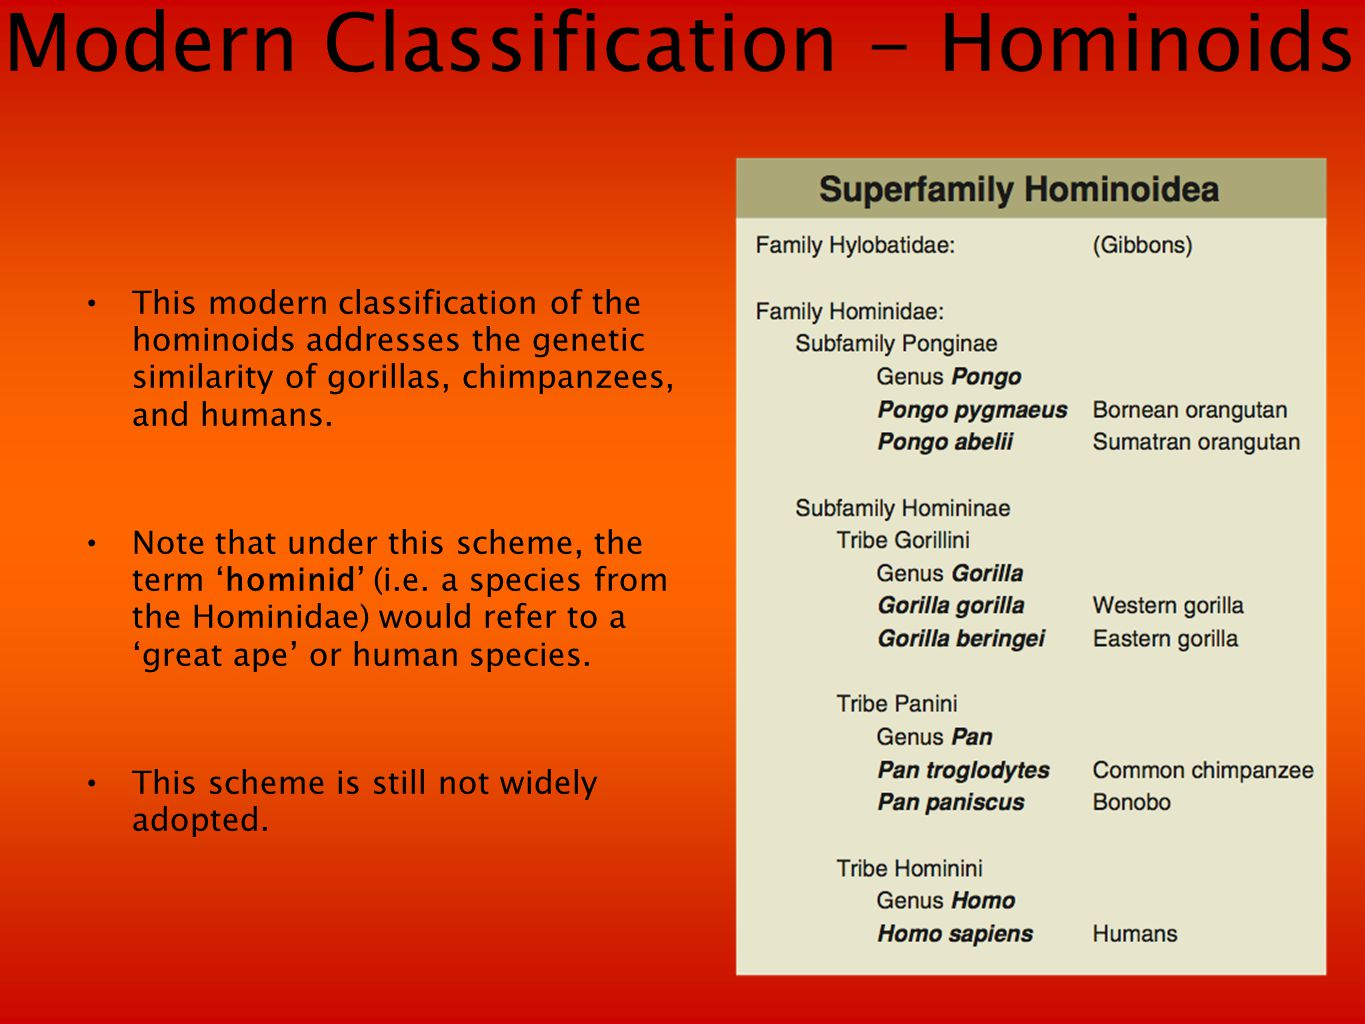 Modern Classification - Hominoids This modern classification of the hominoids addresses the genetic similarity of gorillas, chimpanzees, and humans.